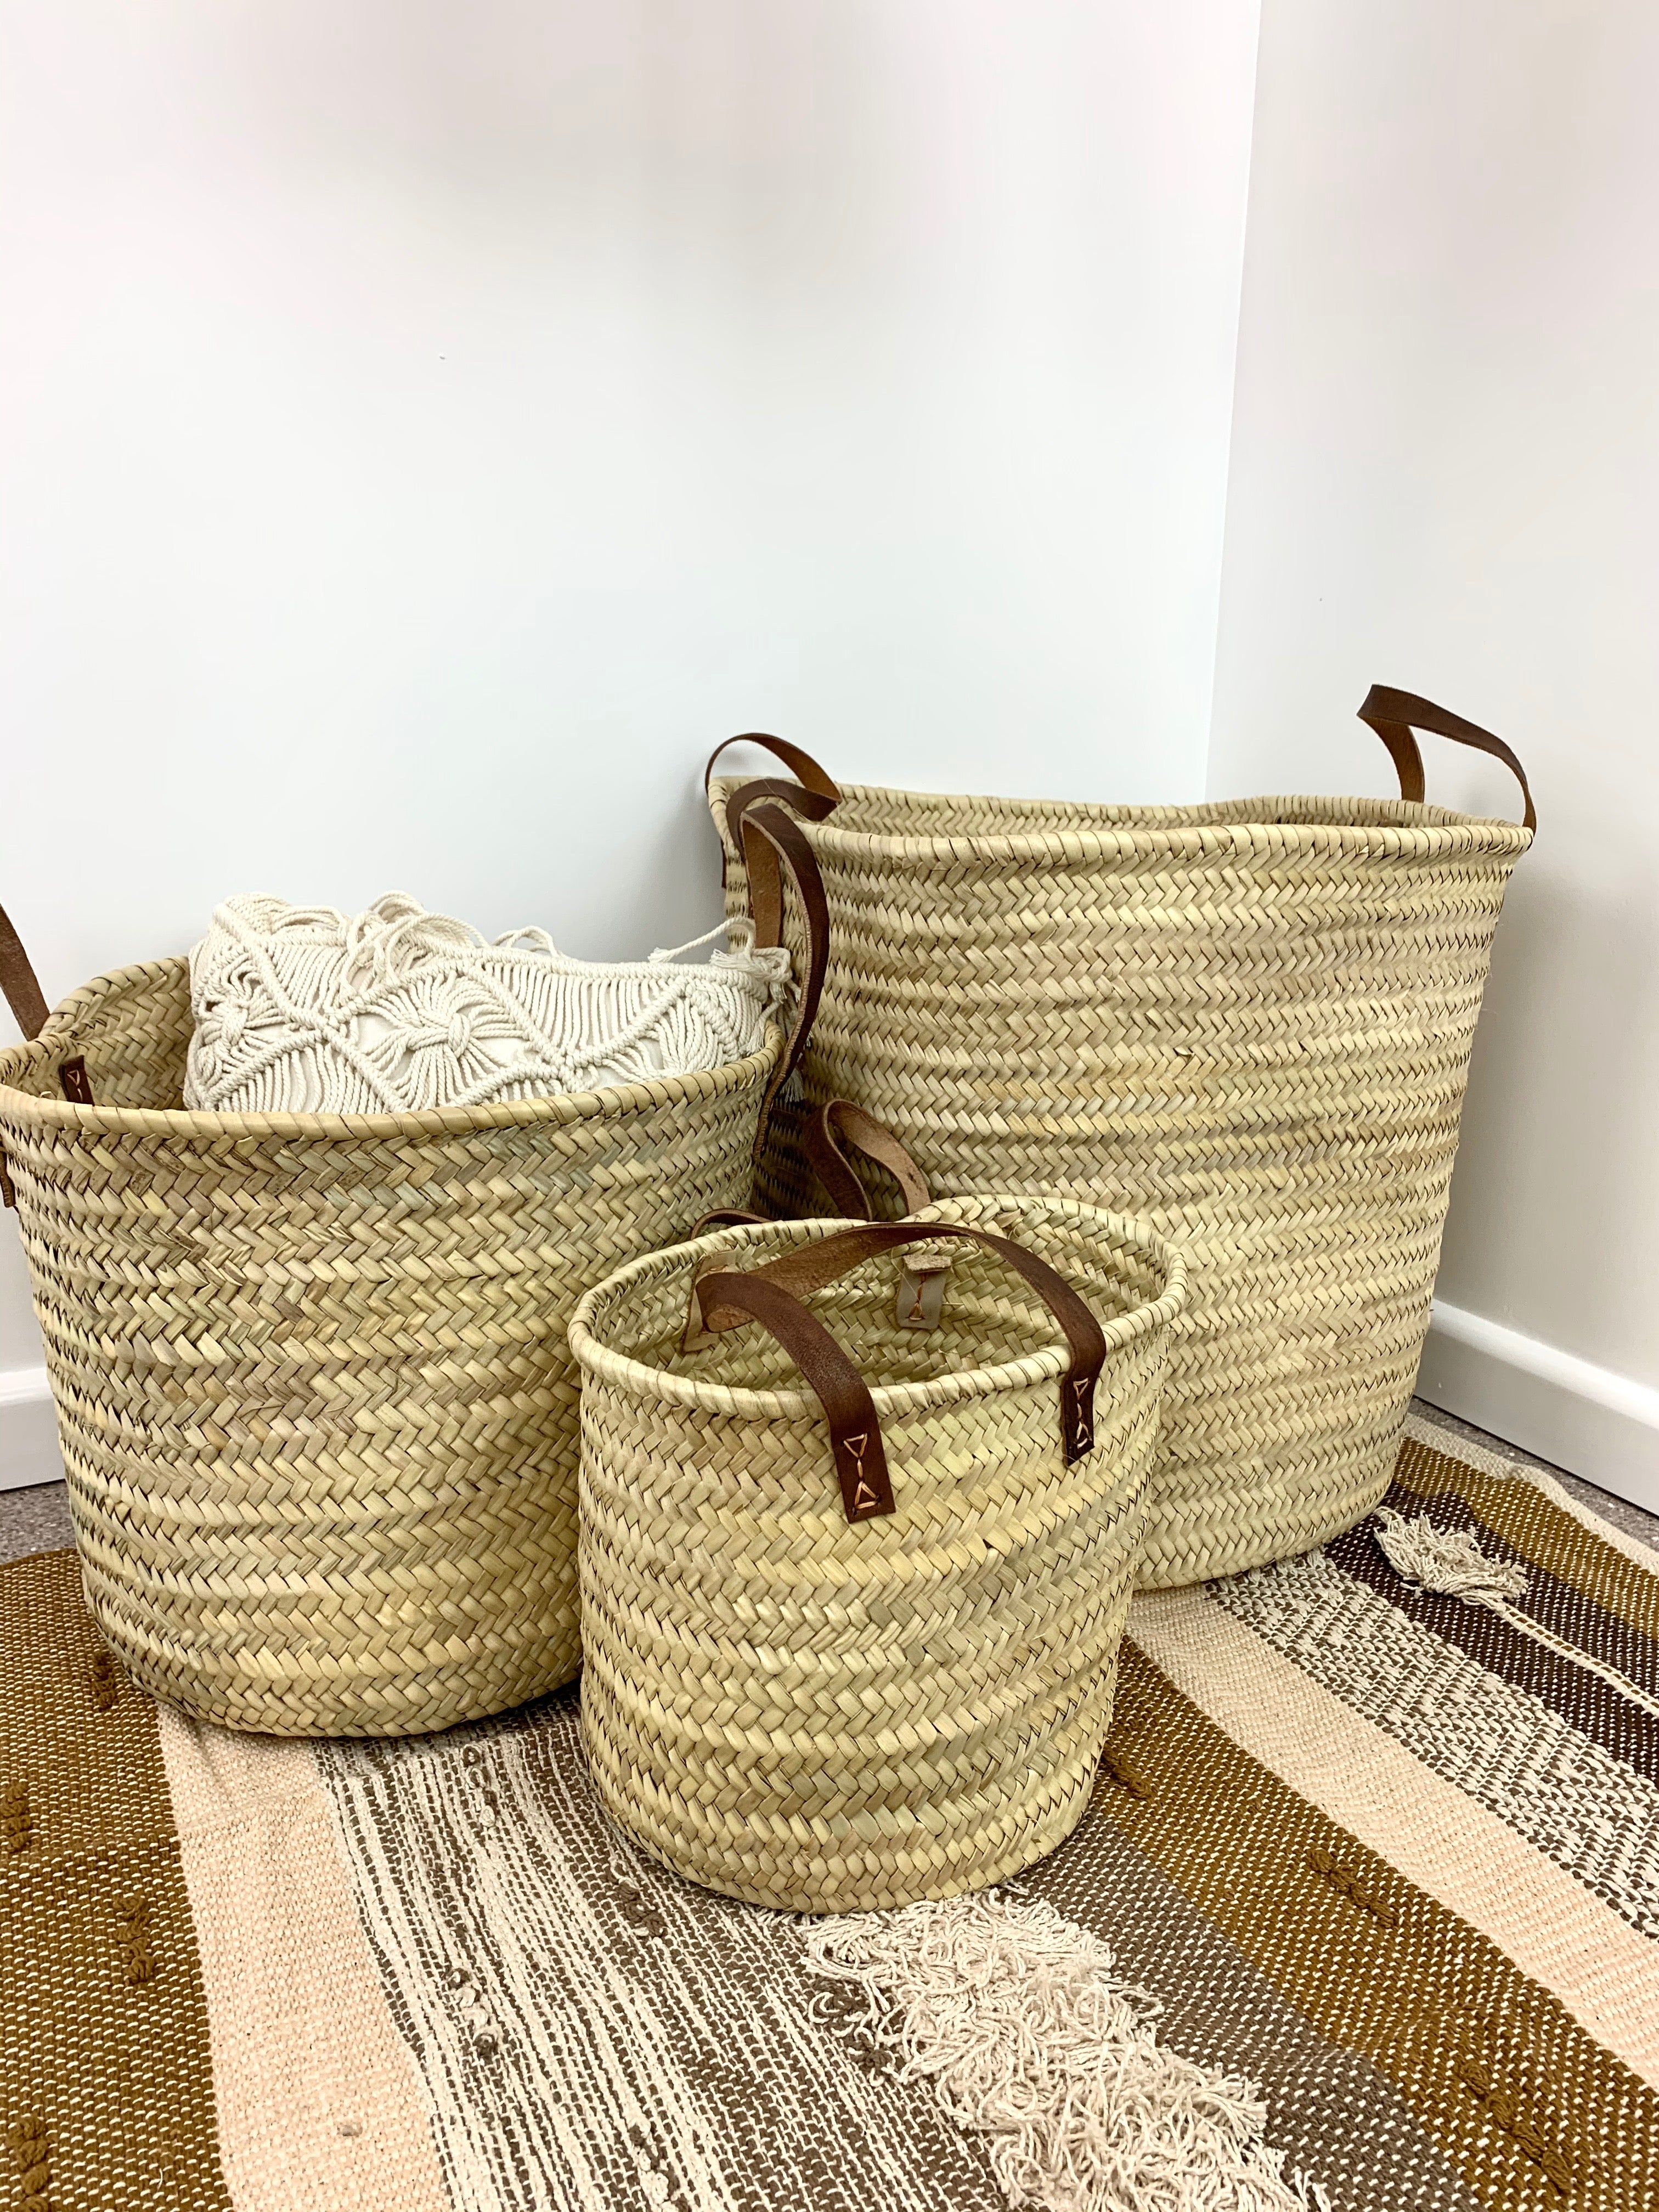 Palm Leaf Storage Baskets with Leather Handles